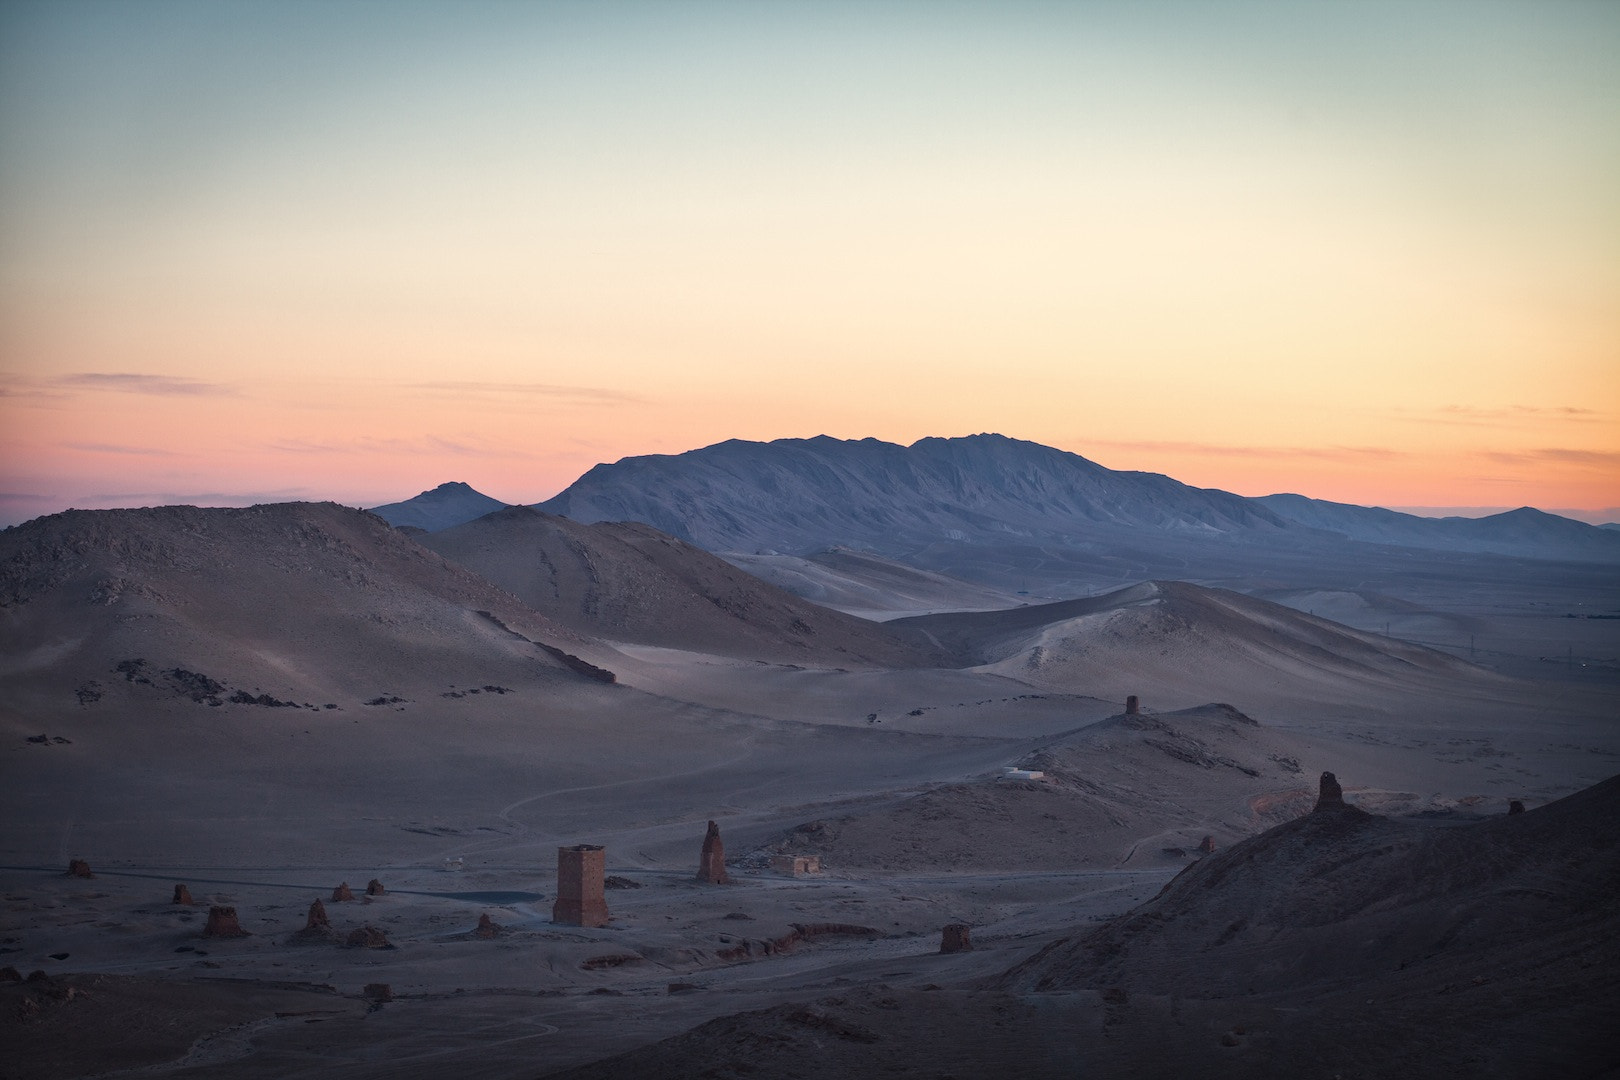 Photograph Syrian Desert by Romain Winkel on 500px